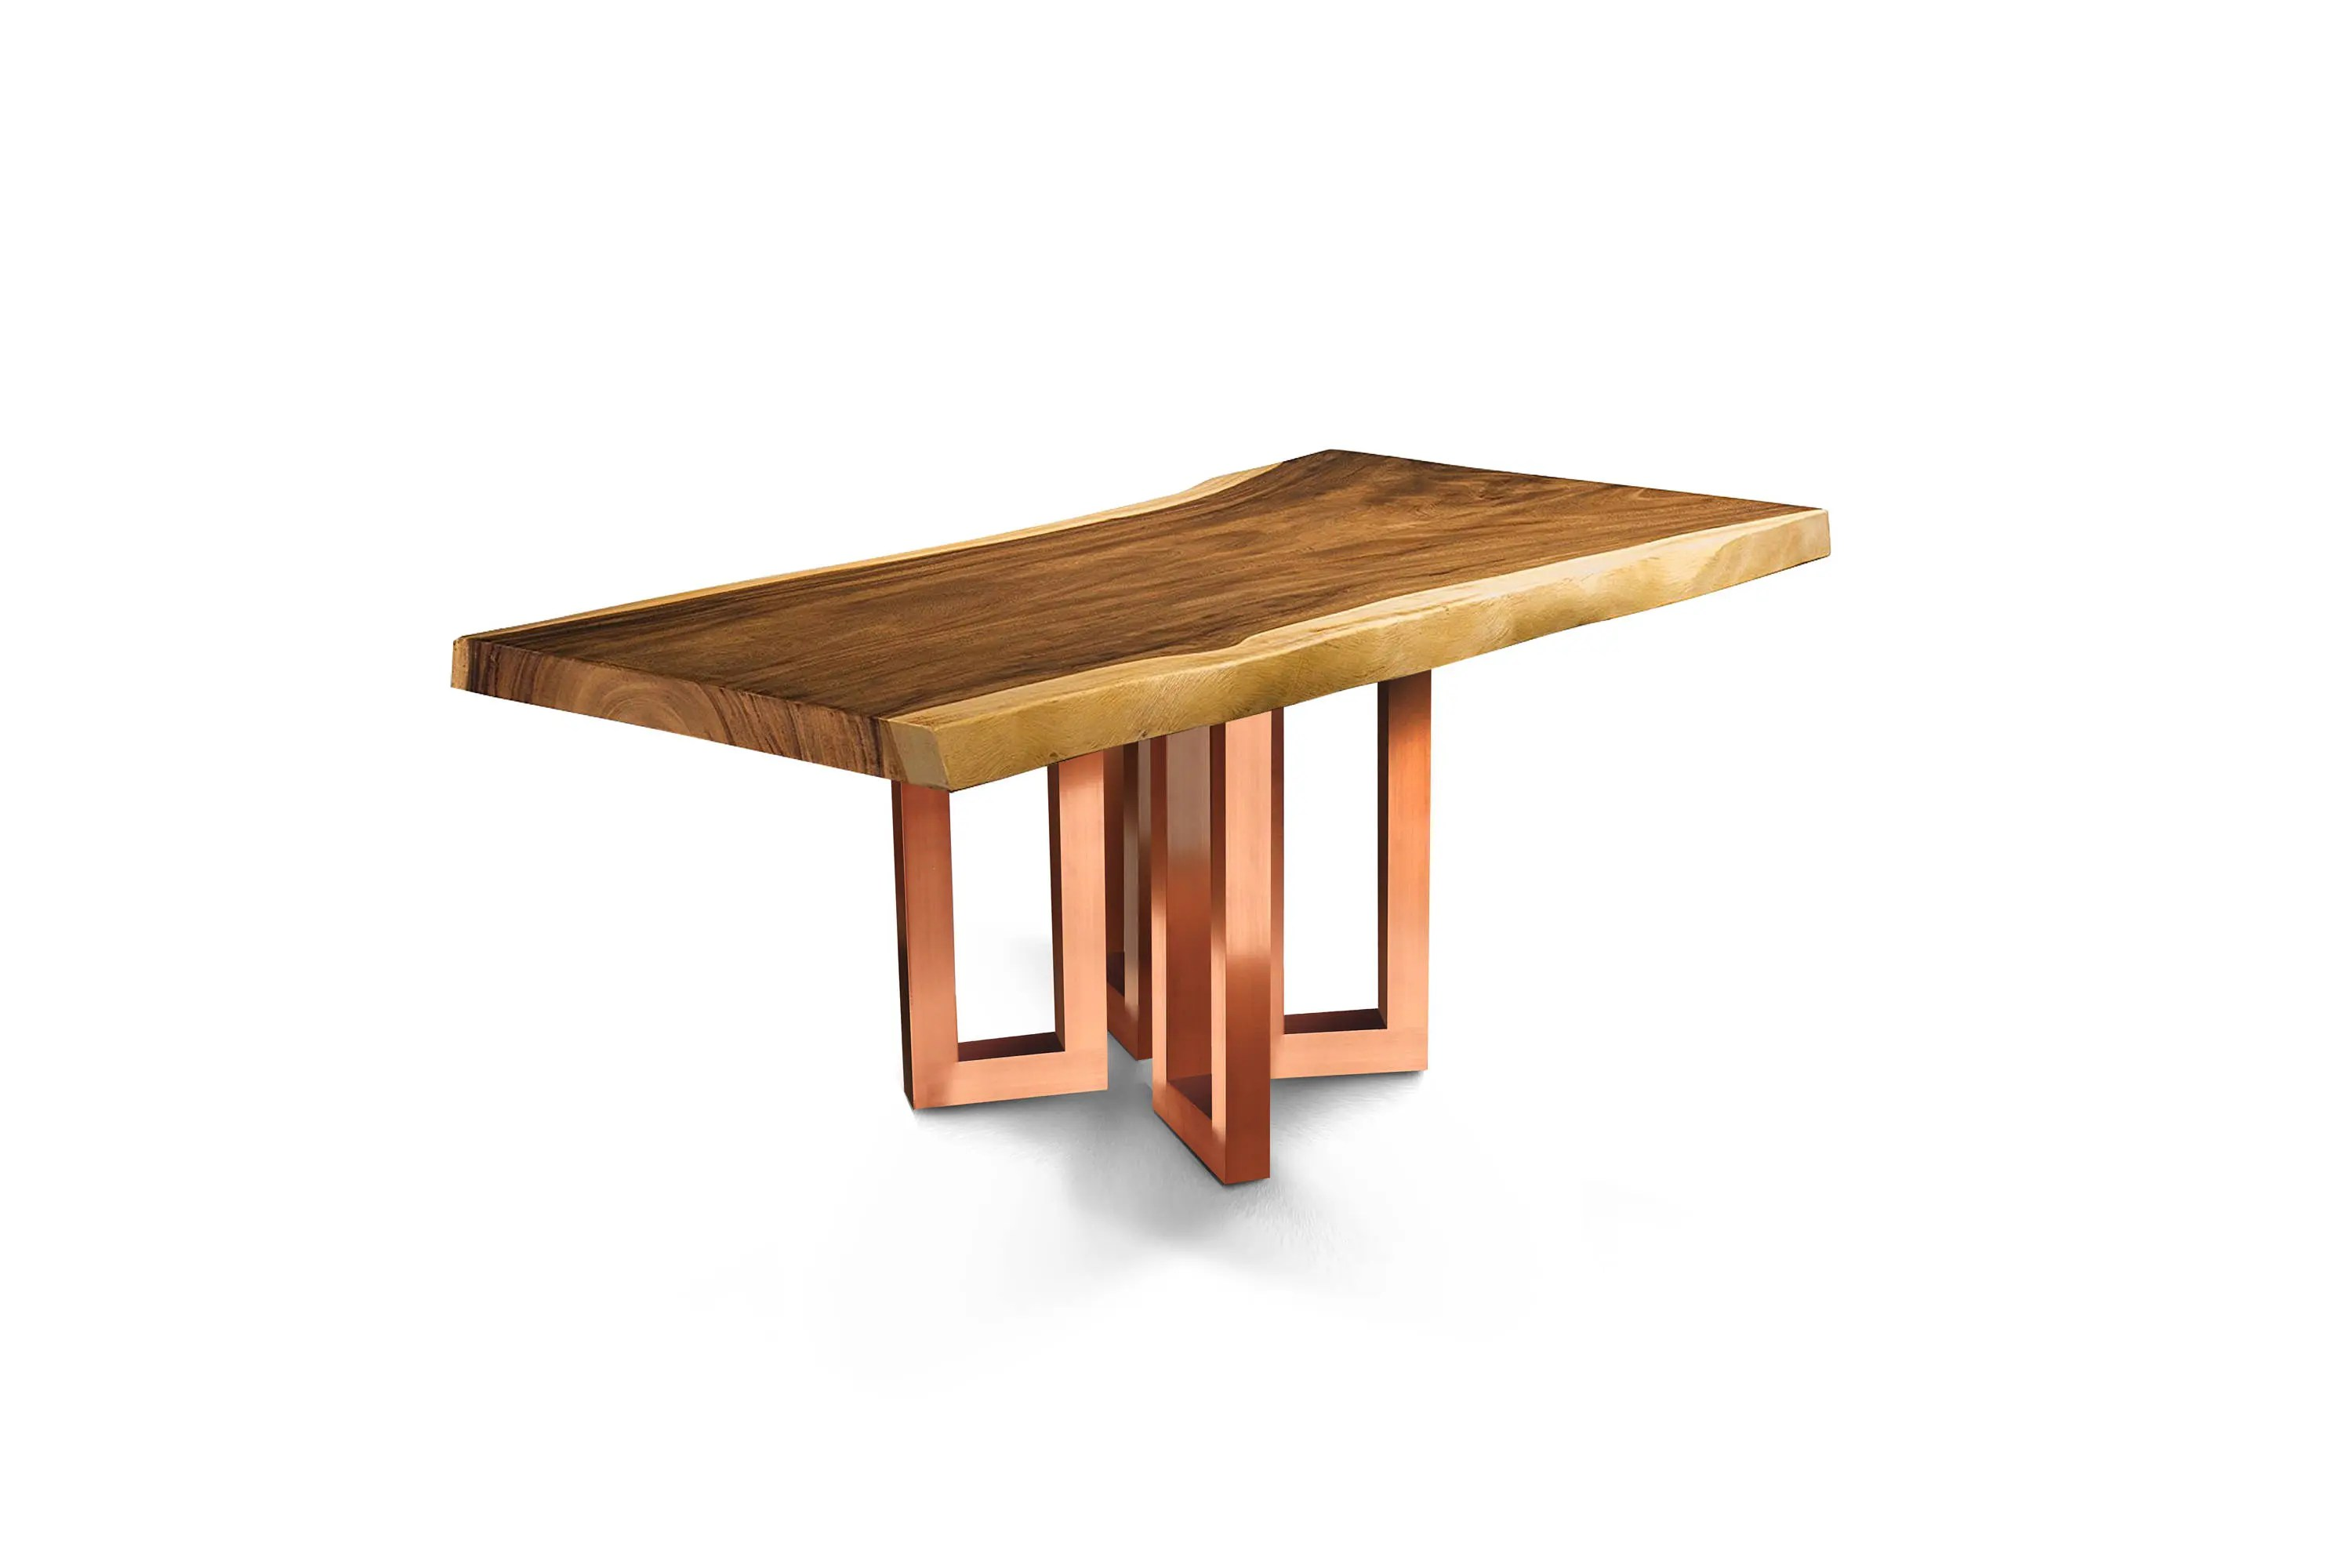 Couchtisch Asia Luxury Live Edge Dining Table Saint Matthias Suar Wood Monkey Pod Dining Table Price Upon Request